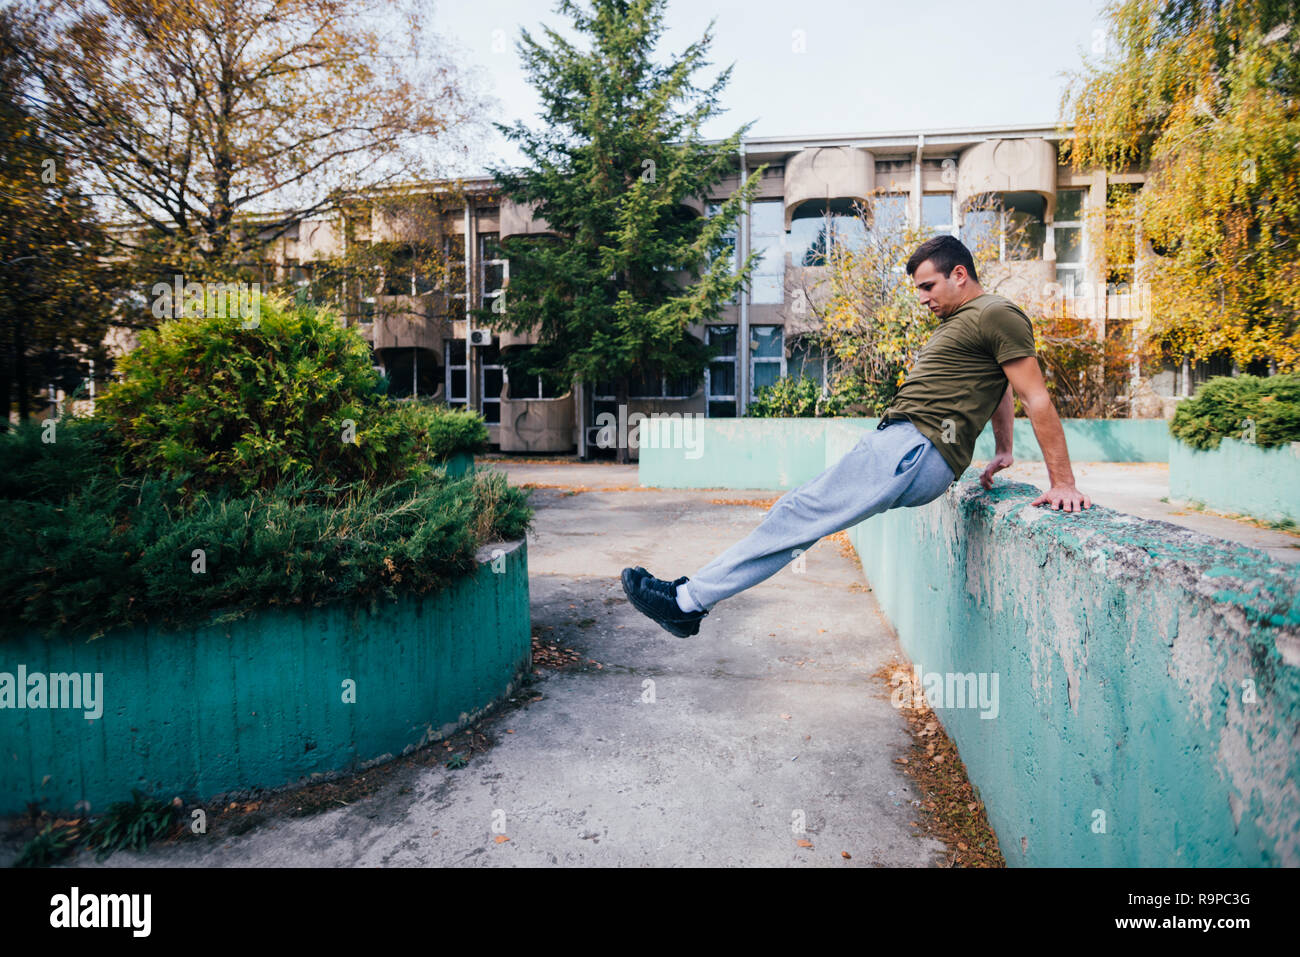 Young parkour guy jumping over a concrete wall and landing on another concrete wall while doing tricks in the air. Stock Photo